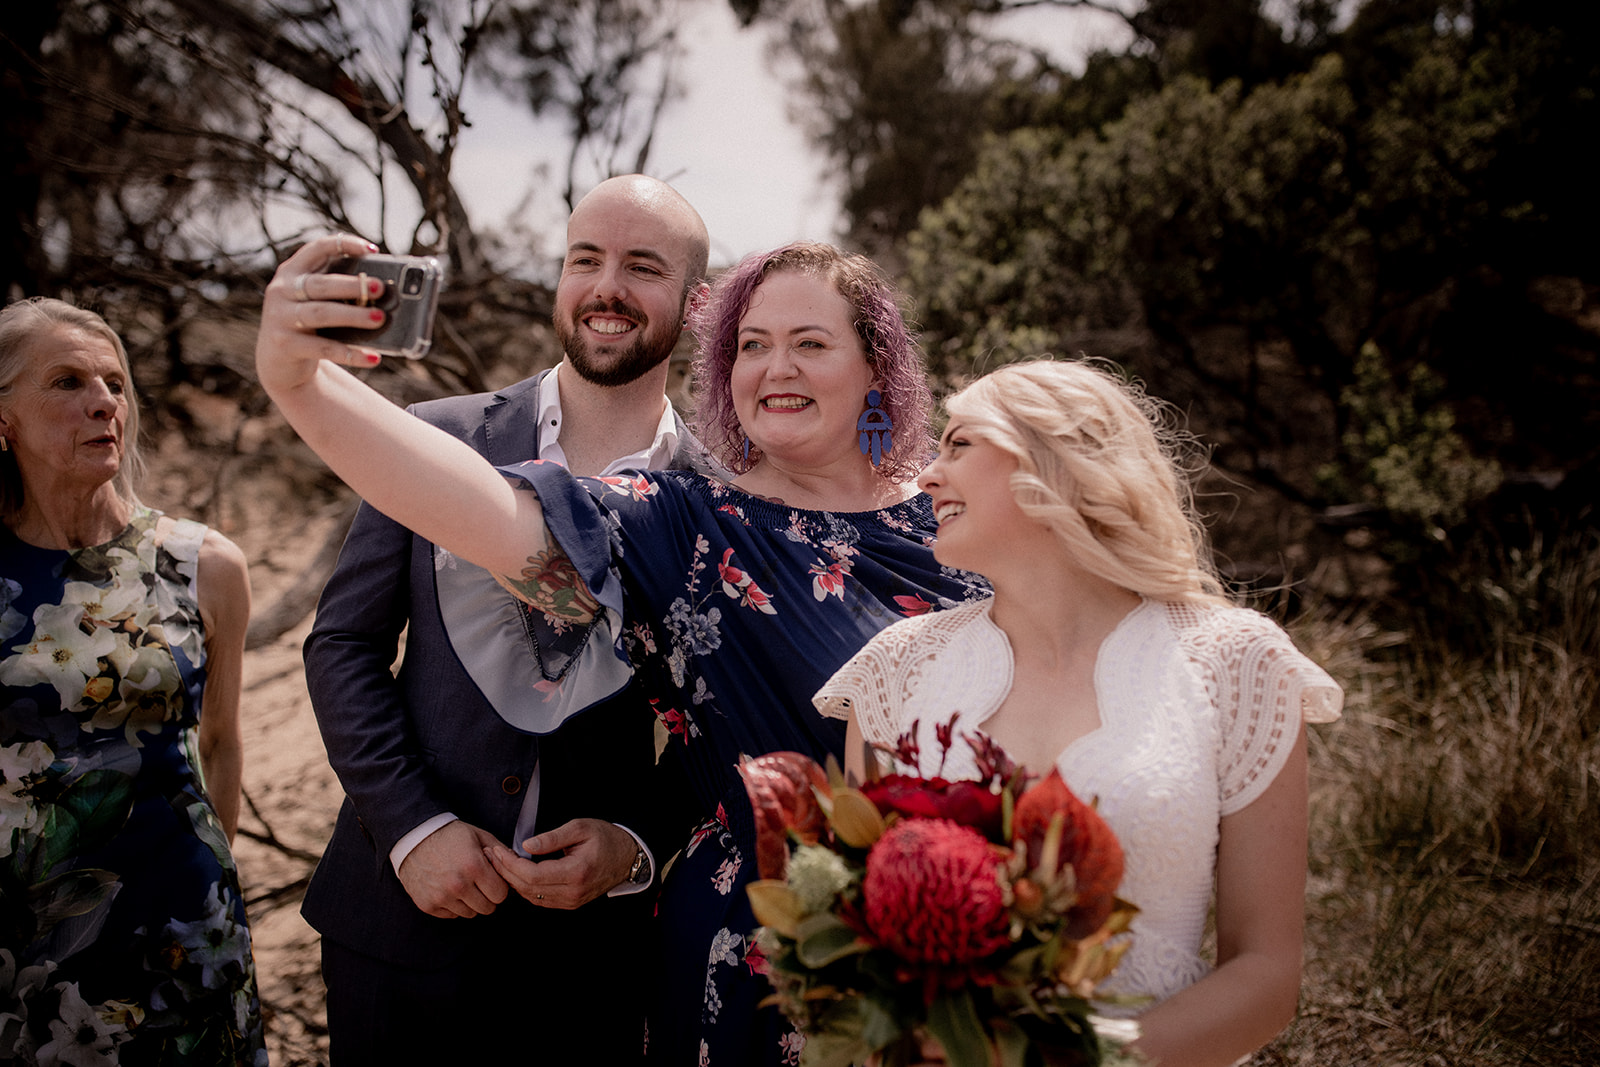 a professional photo of a selfie, the purple-haired celebrant stands in between the bride and groom and they are all grinning at the phone camera